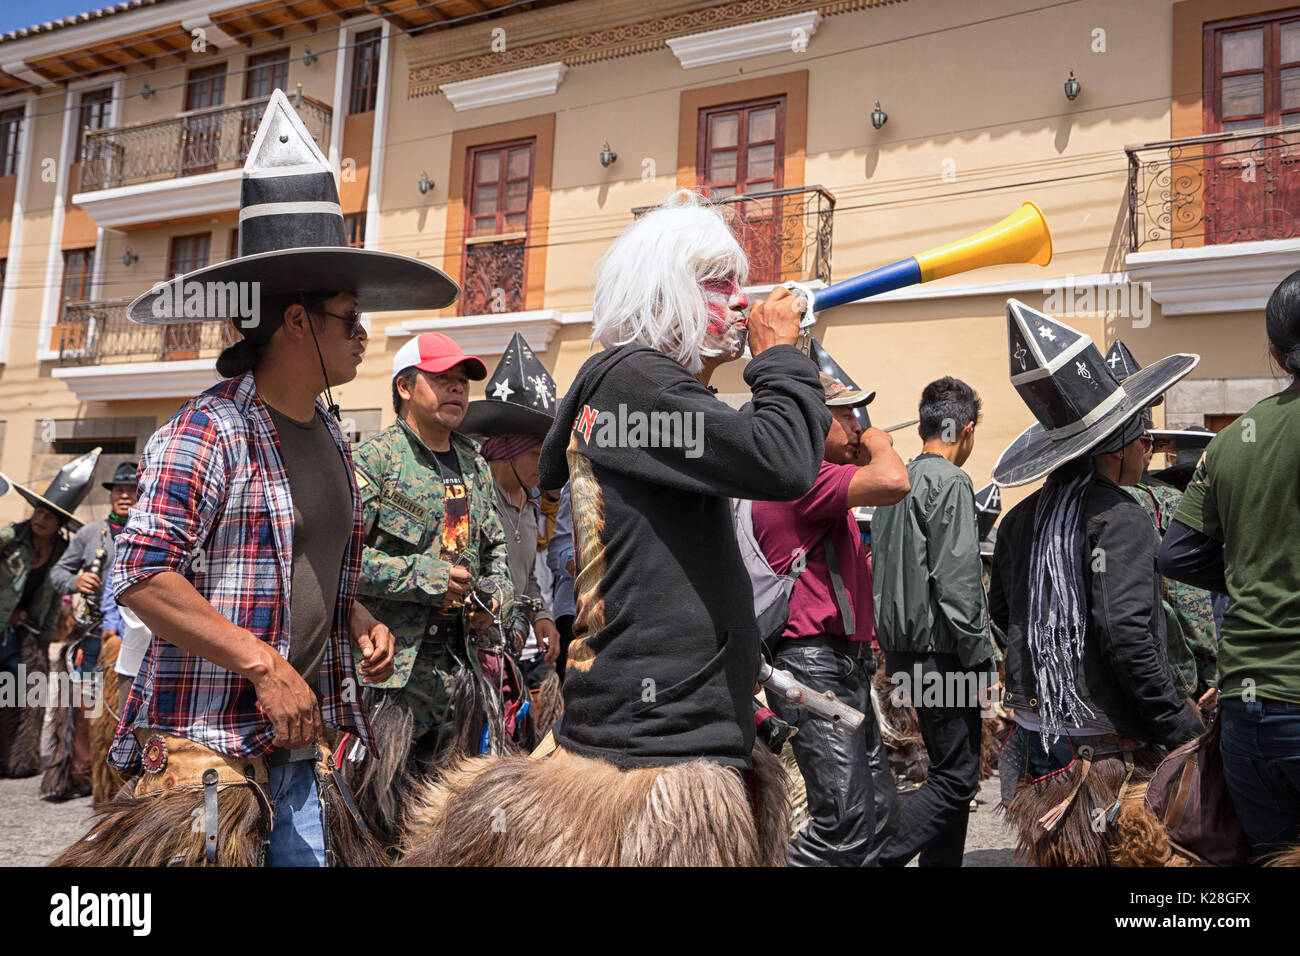 June 25, 2017 Cotacachi, Ecuador: male indigenous dancers during the 'occupy the plaza' parade at Inti Raymi celebrations - Stock Image